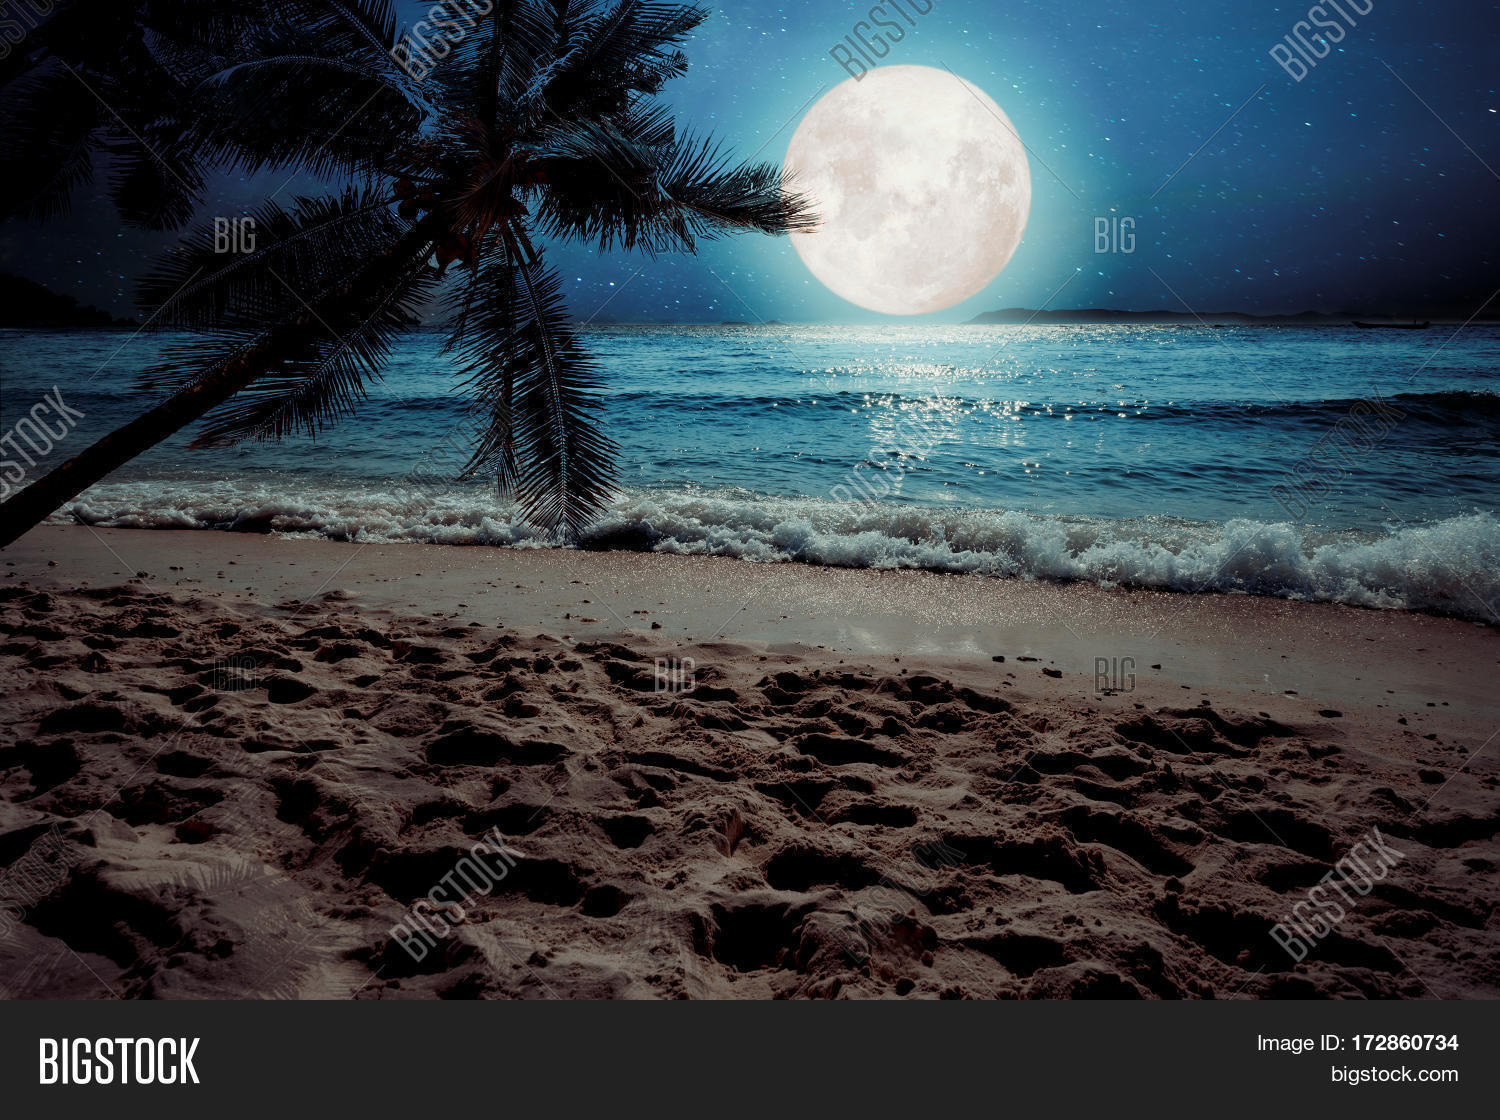 Beautiful Fantasy Tropical Beach With Star And Full Moon In Night Skies Seascape